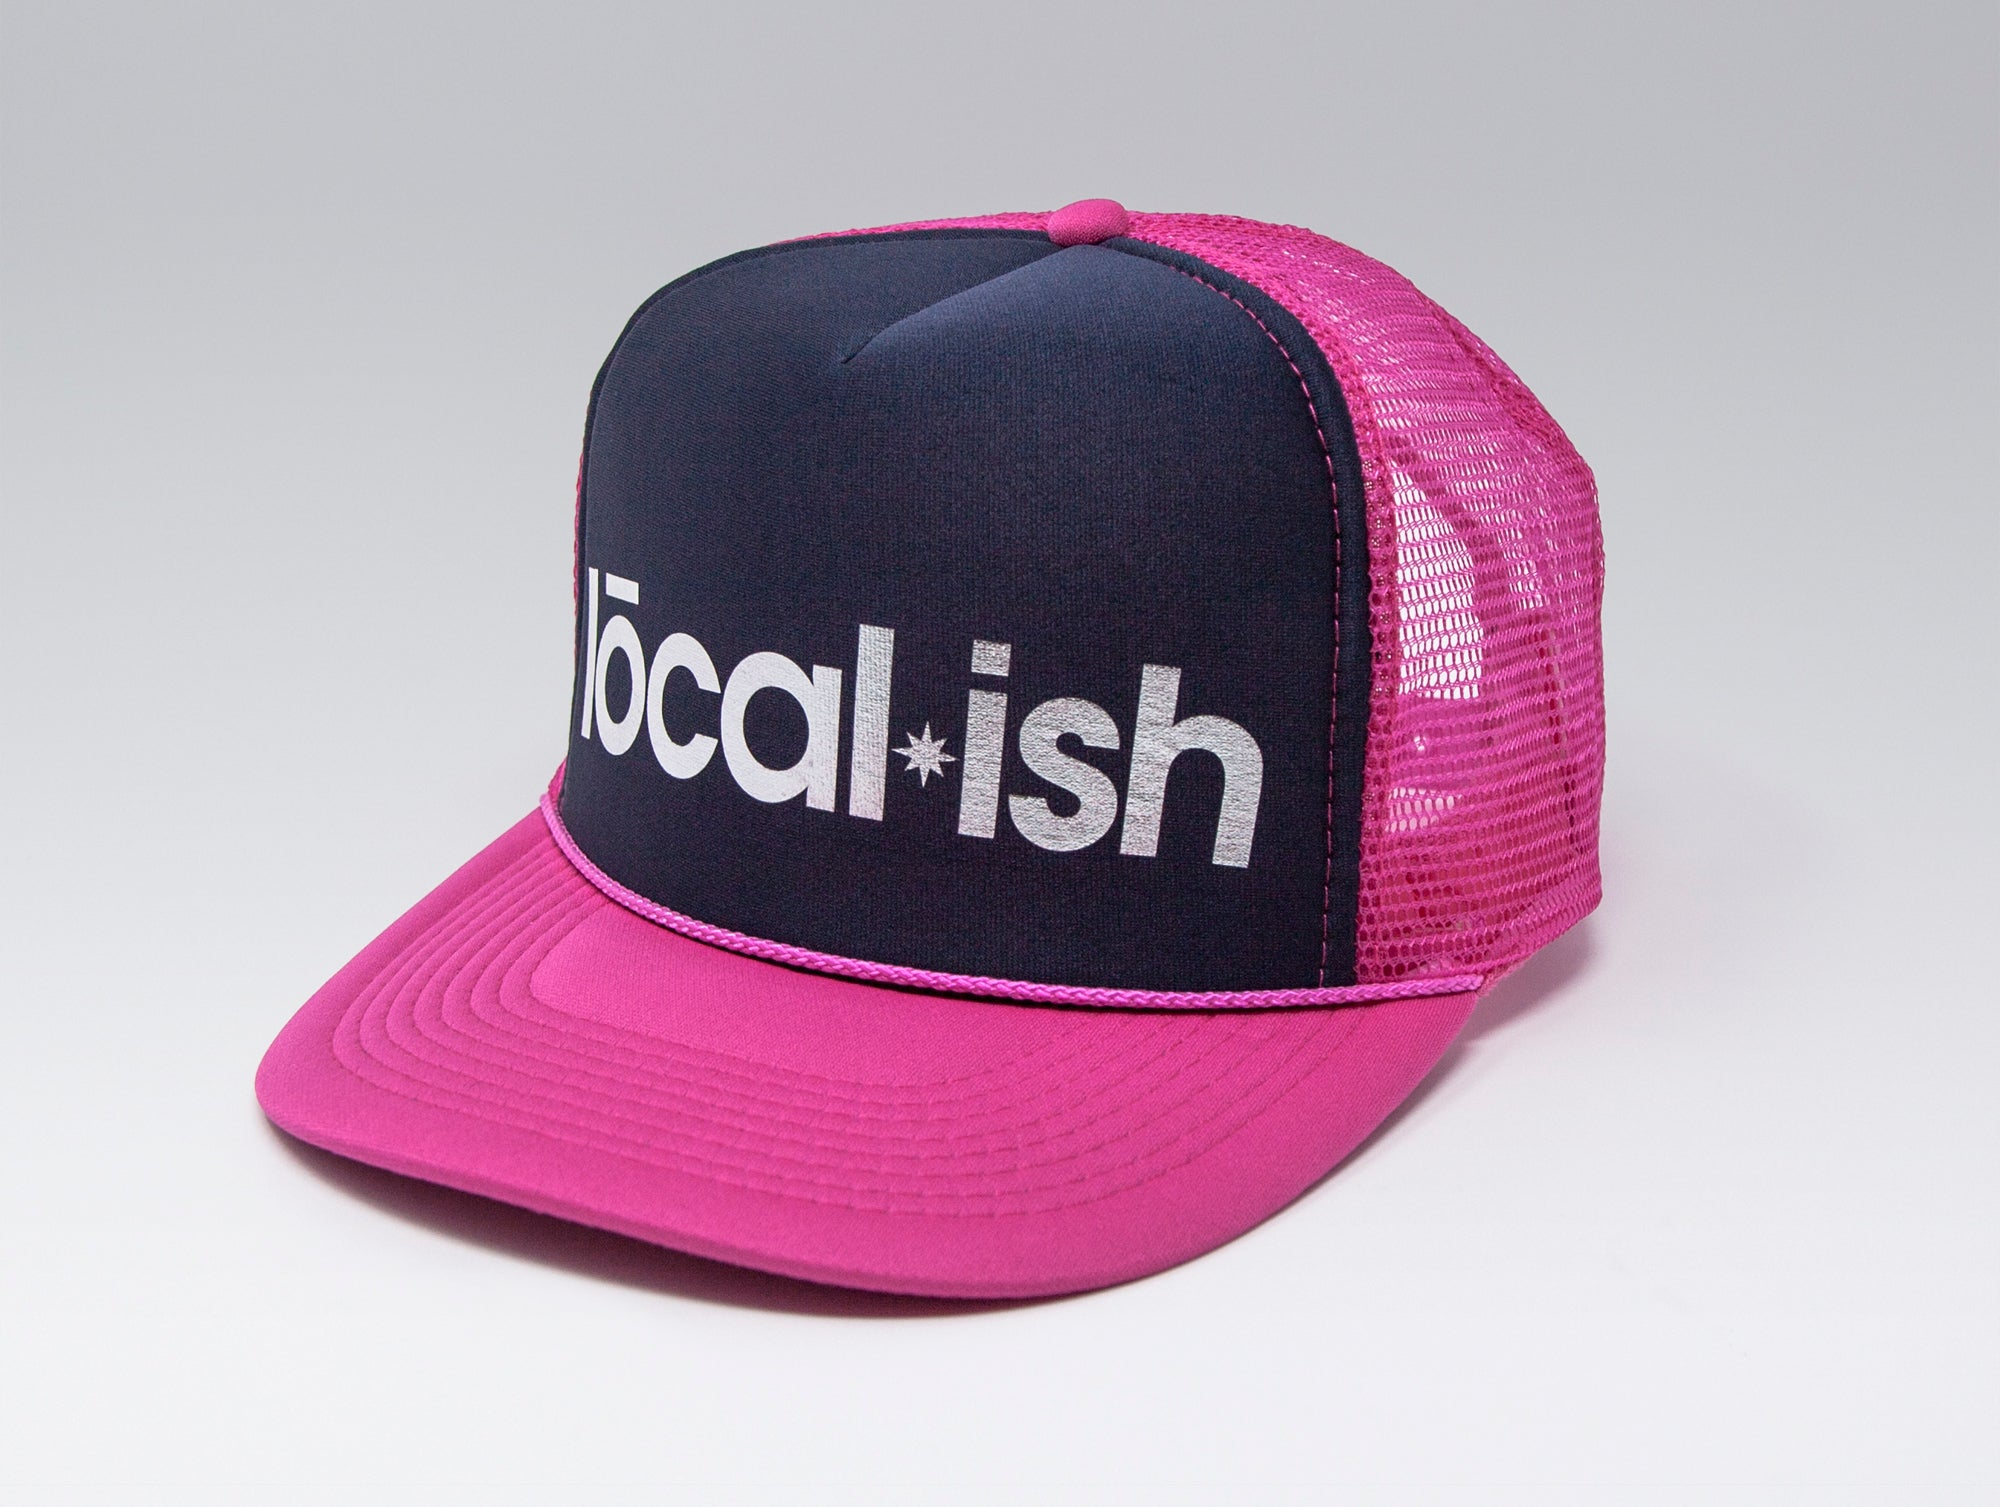 Localish Foil Printed Trucker Hat - Navy & Magenta - right